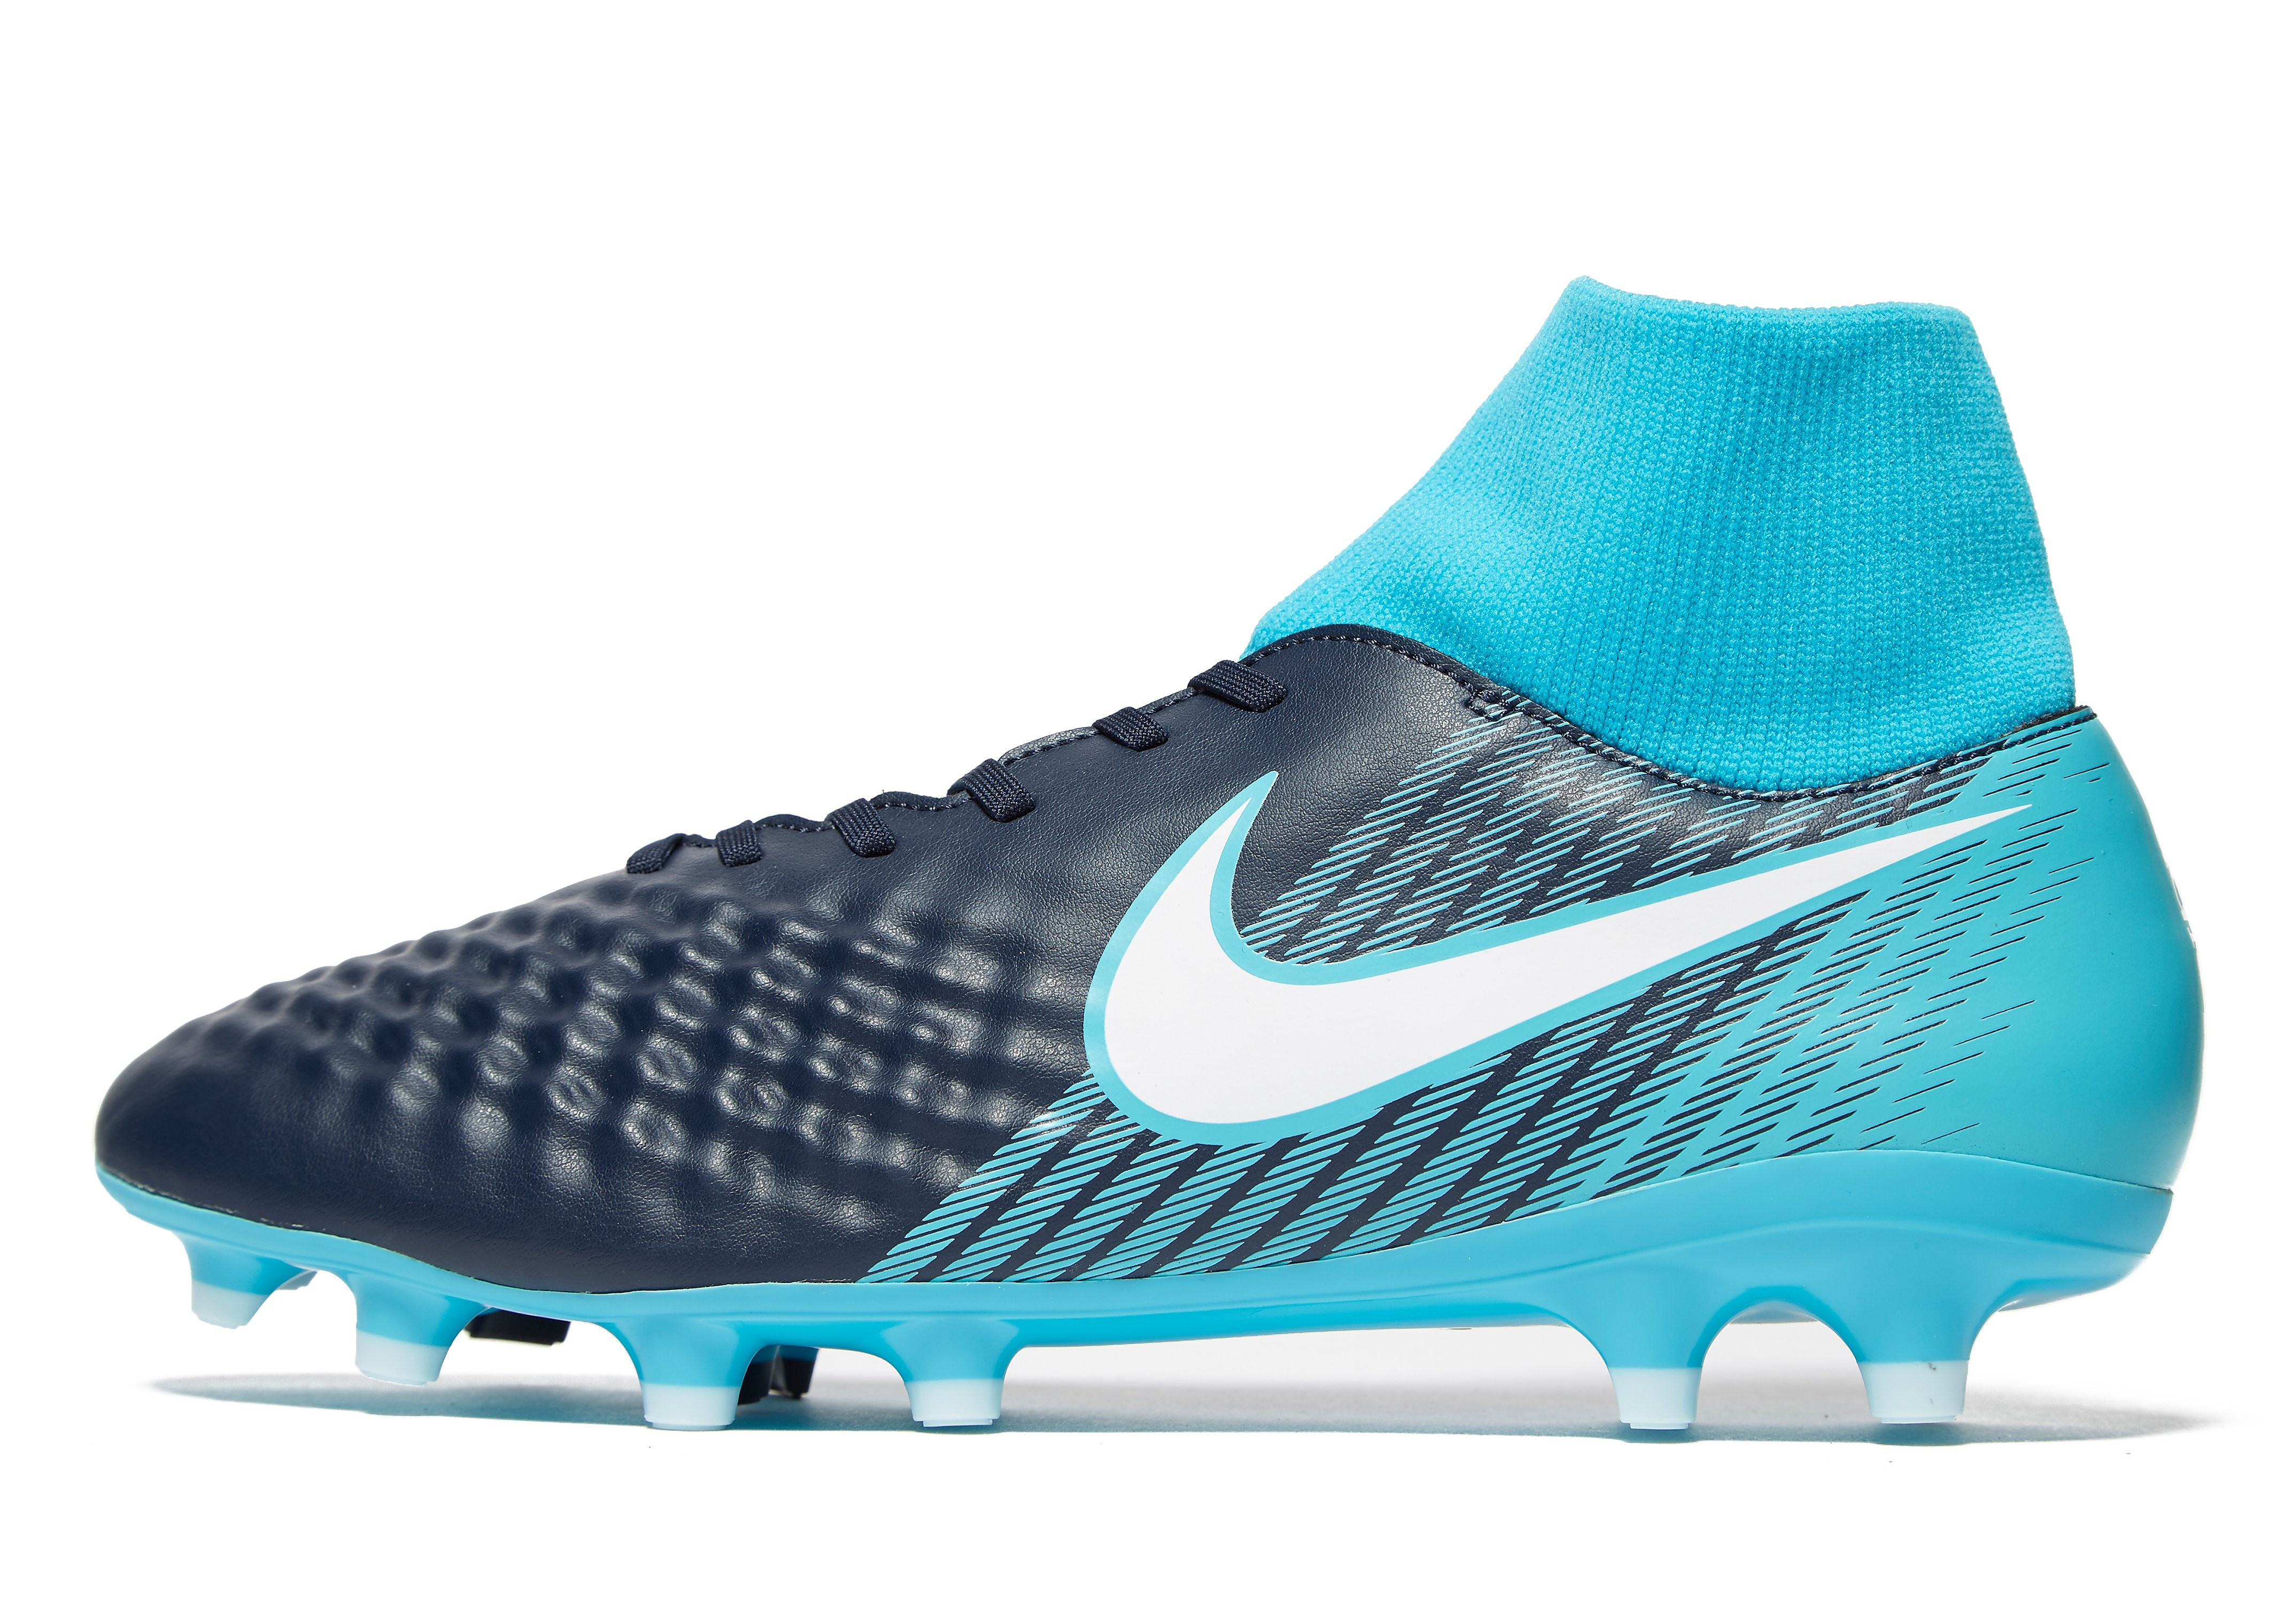 Nike Fire and Ice Magista Onda II Dynamic Fit FG